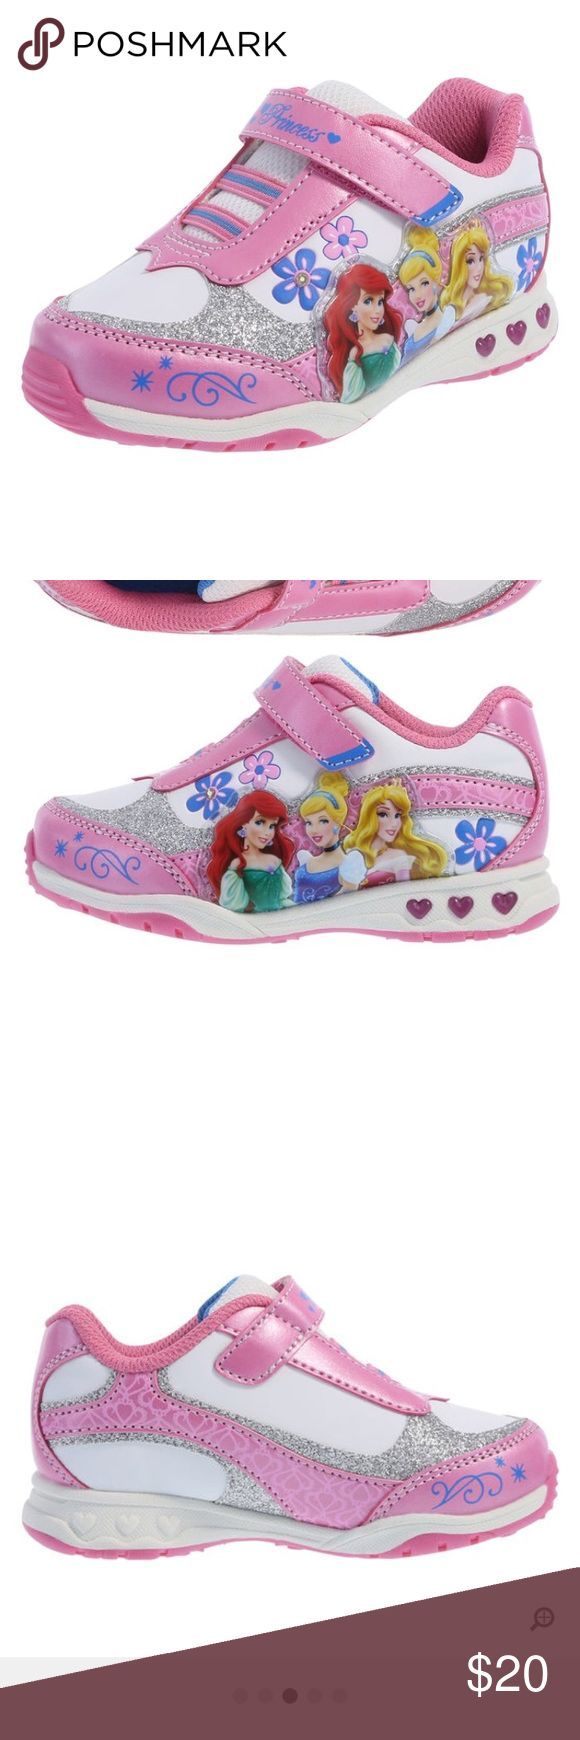 Girls princes light up runner 🏃♀️ Light up her world with this darling runner! It features her favorite Disney Princesses amidst flowers, glitter and whimsical designs, lighted elements that light up with every step, stretchy laces, strap with hook and loop close, padded tongue and collar, mesh lining, padded insole, and a non-marking, skid-resistant outsole. Manmade materials. #still looks brandnew as you can see👍 happy shopping! Disney Shoes Sneakers